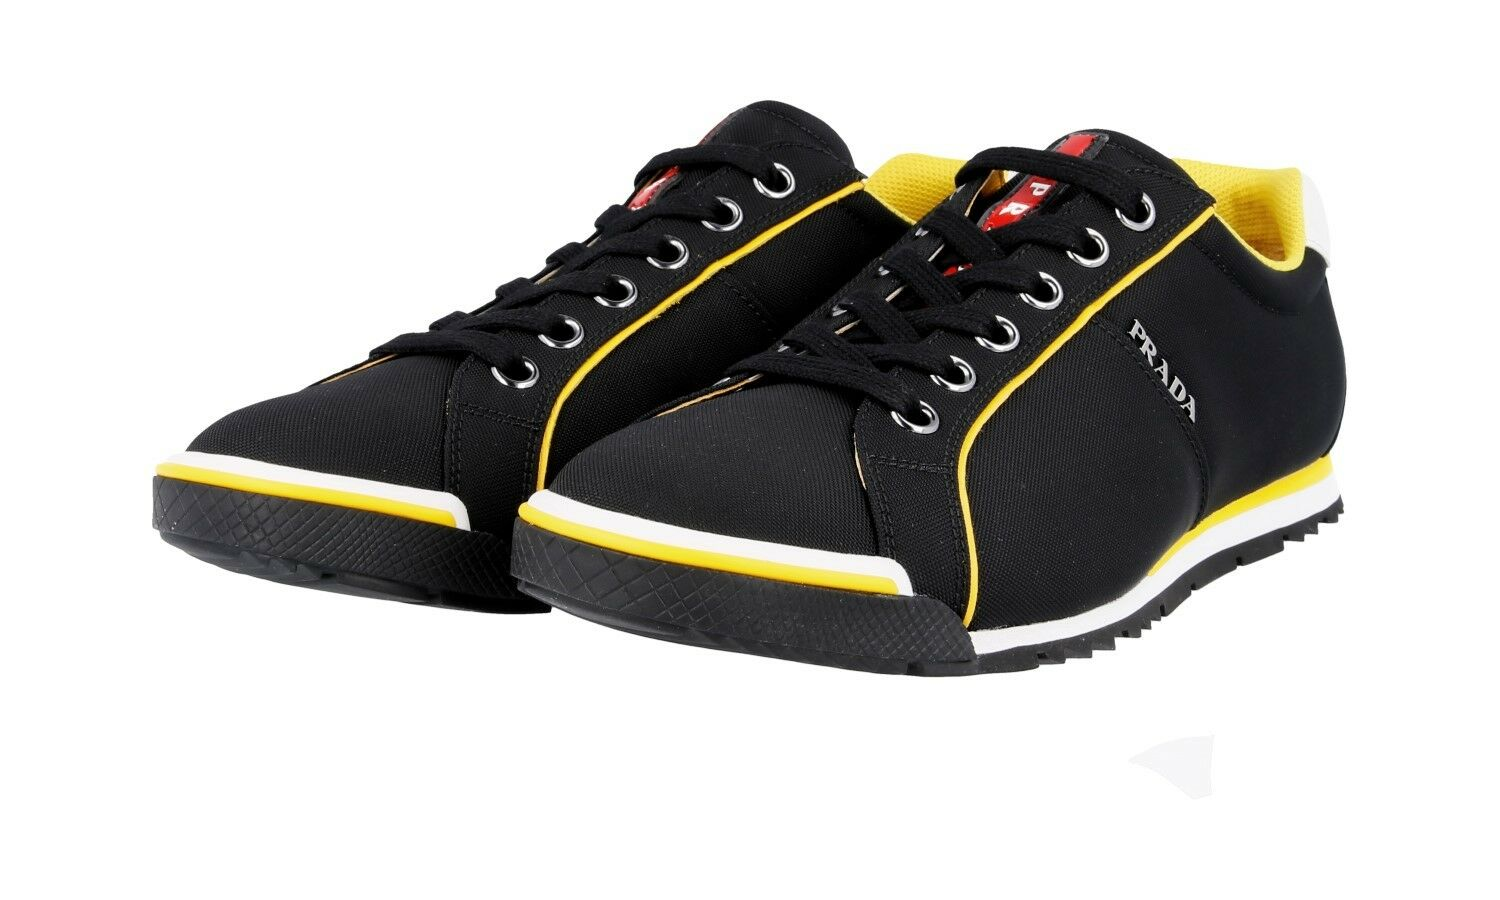 shoes PRADA LUSSO 4E2719 black yellow NUOVE 9 43 43,5